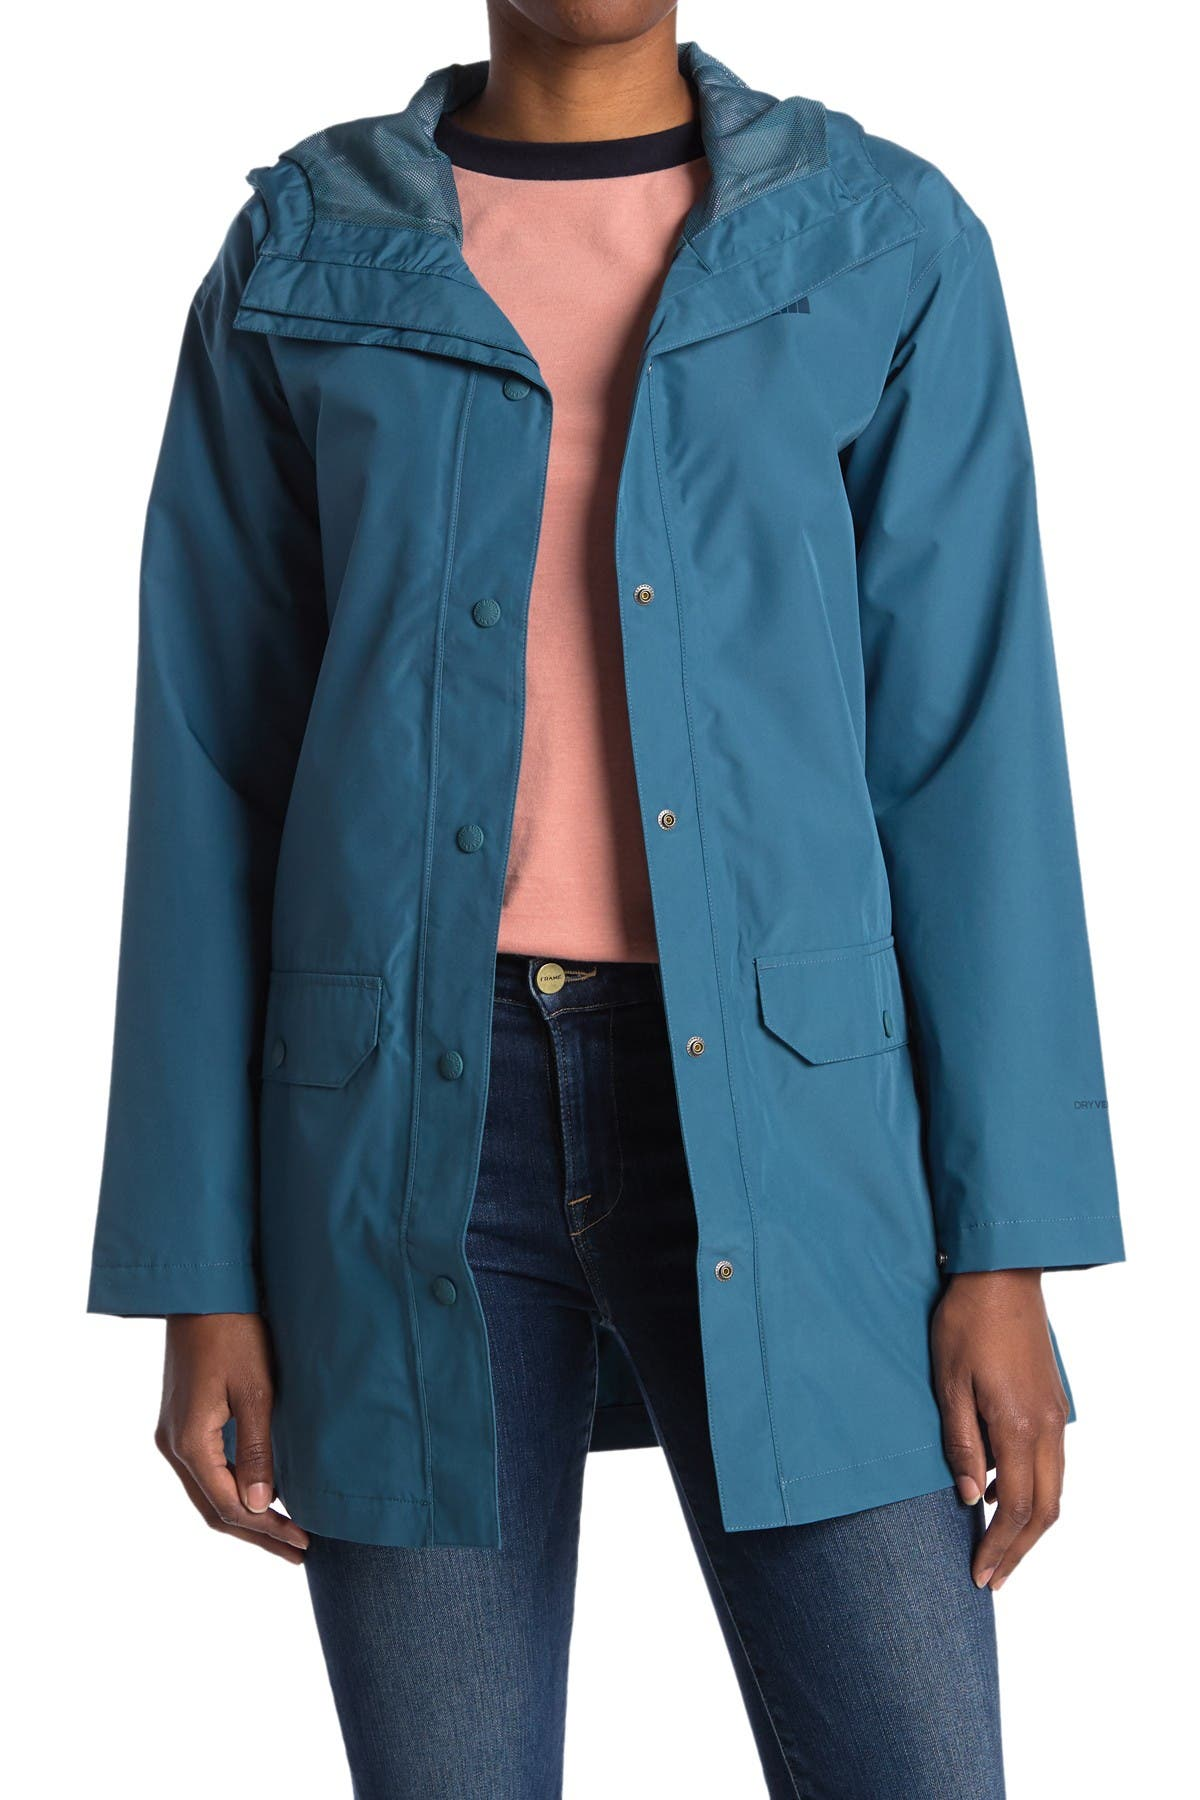 Image of The North Face Woodmont Hooded Waterproof Rain Jacket